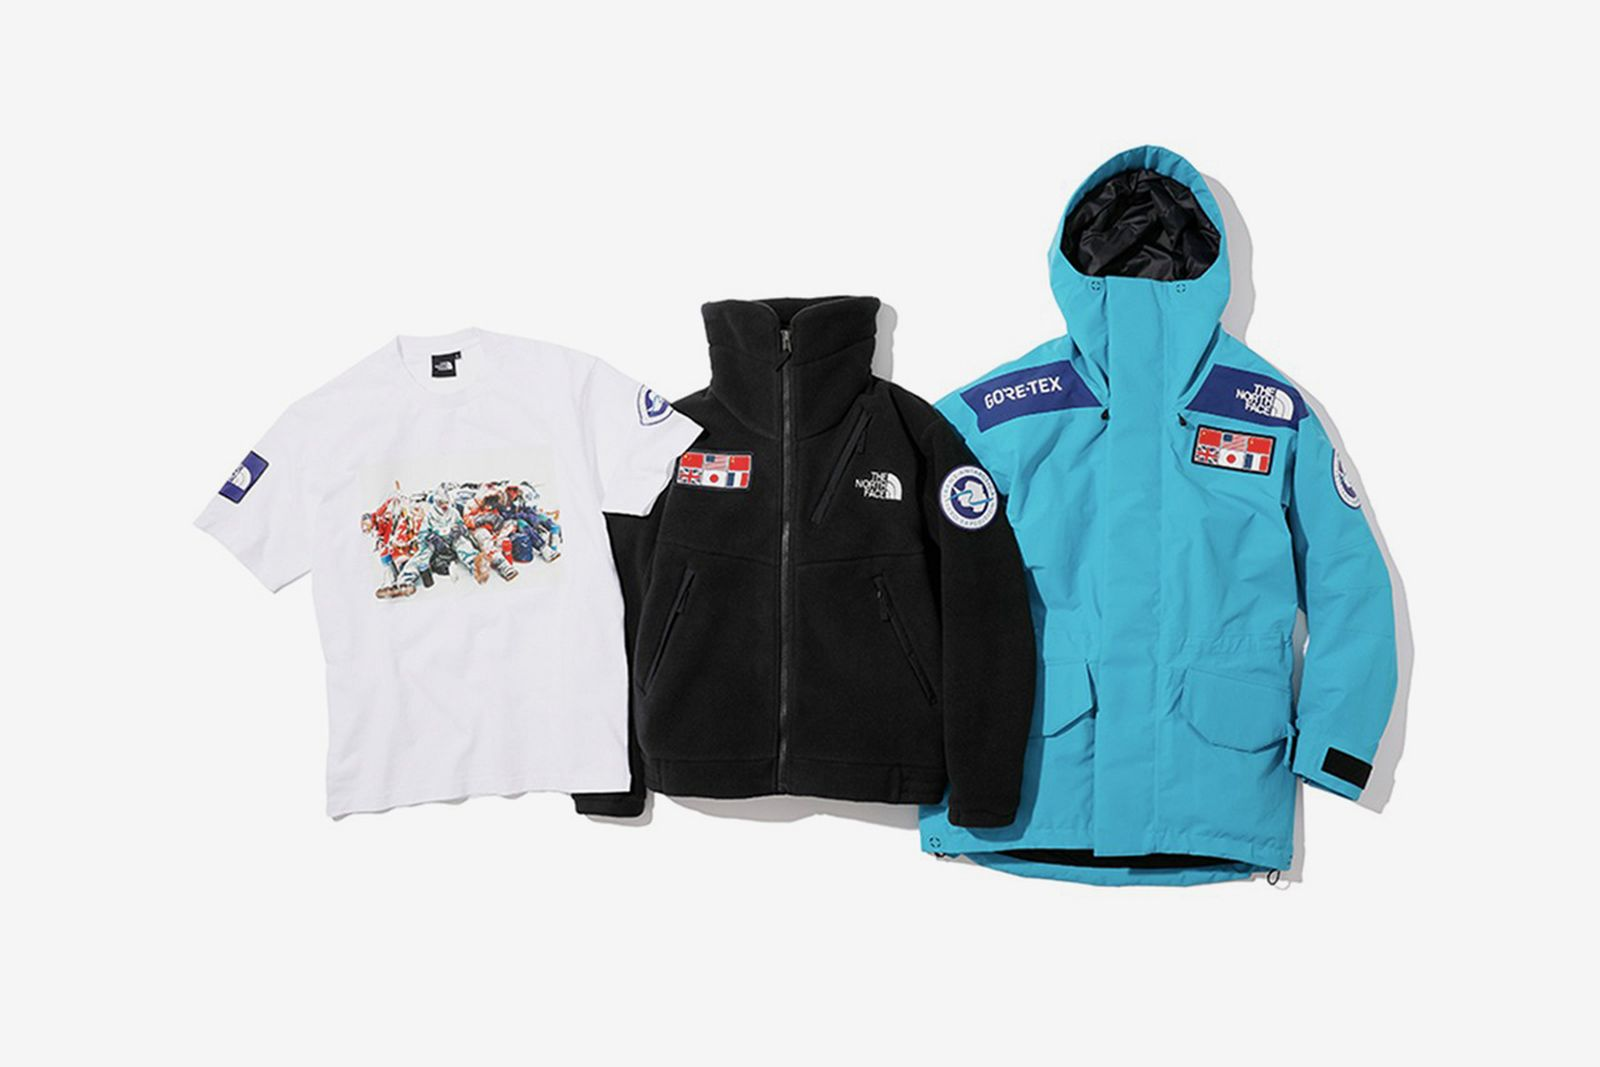 The North Face Trans-Antarctic collection